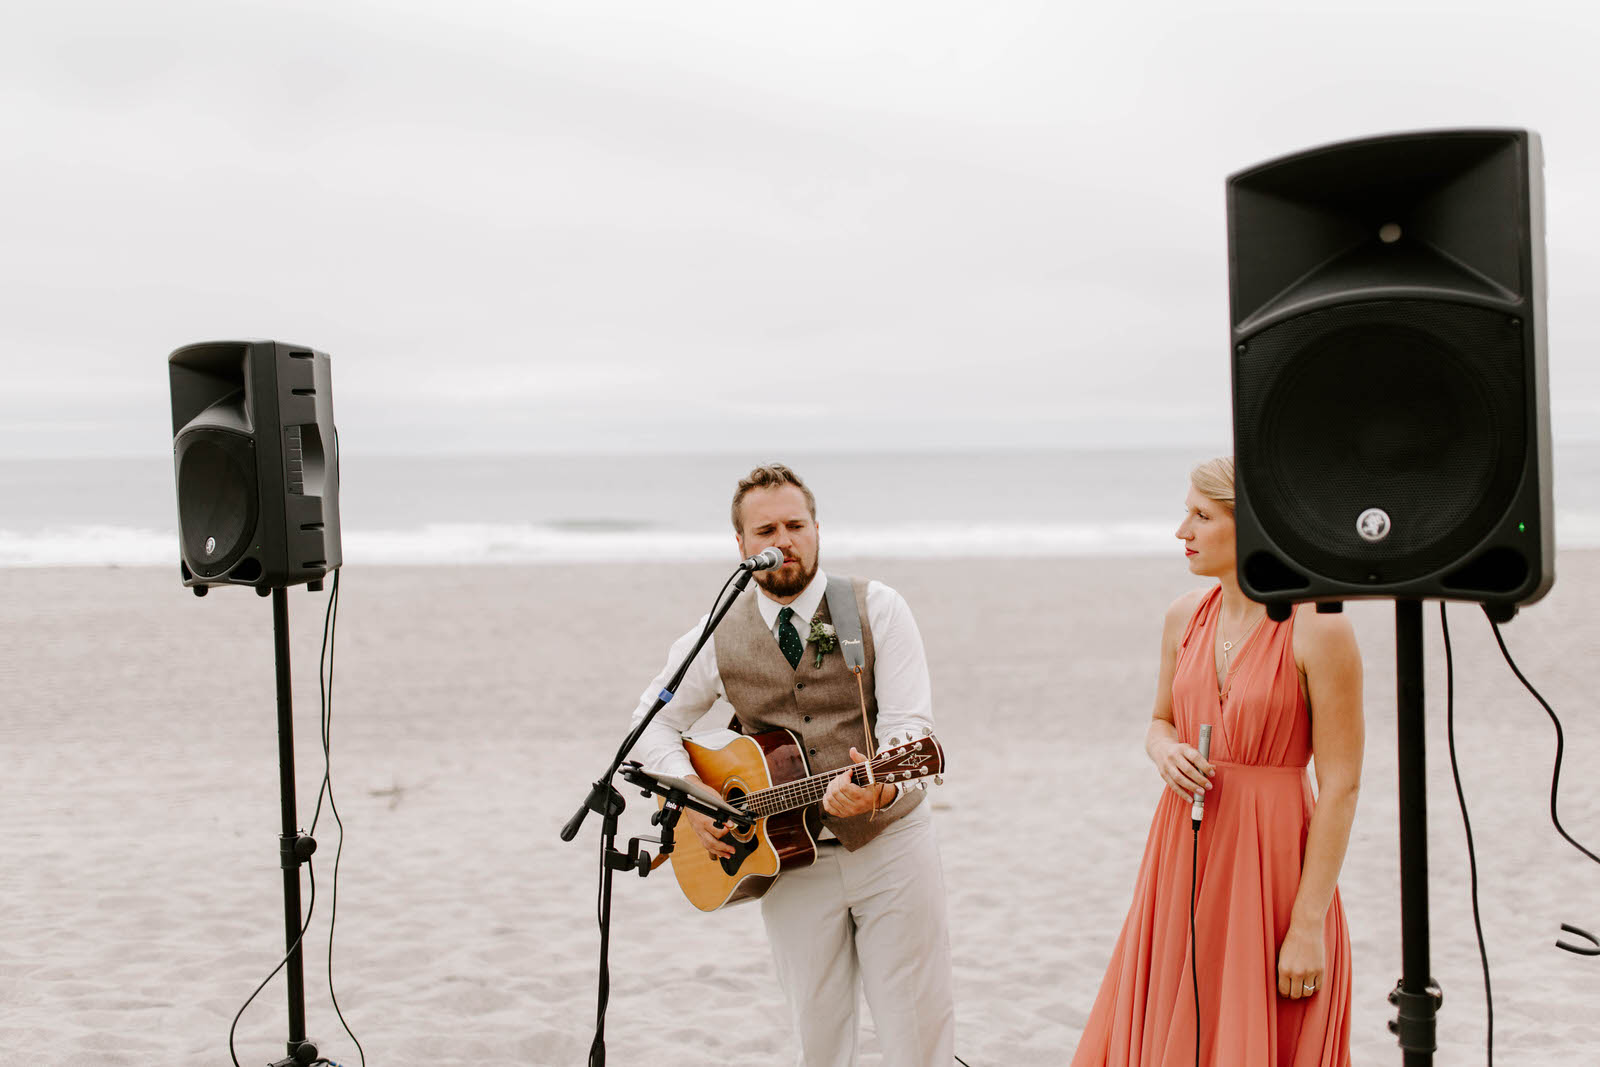 pacific city cape kiwanda community center oregon coast wedding beach feminist queer lgbtq photographer jamie carle lgbt overcast sunny harsh sun reception pink bridesmaids dresses